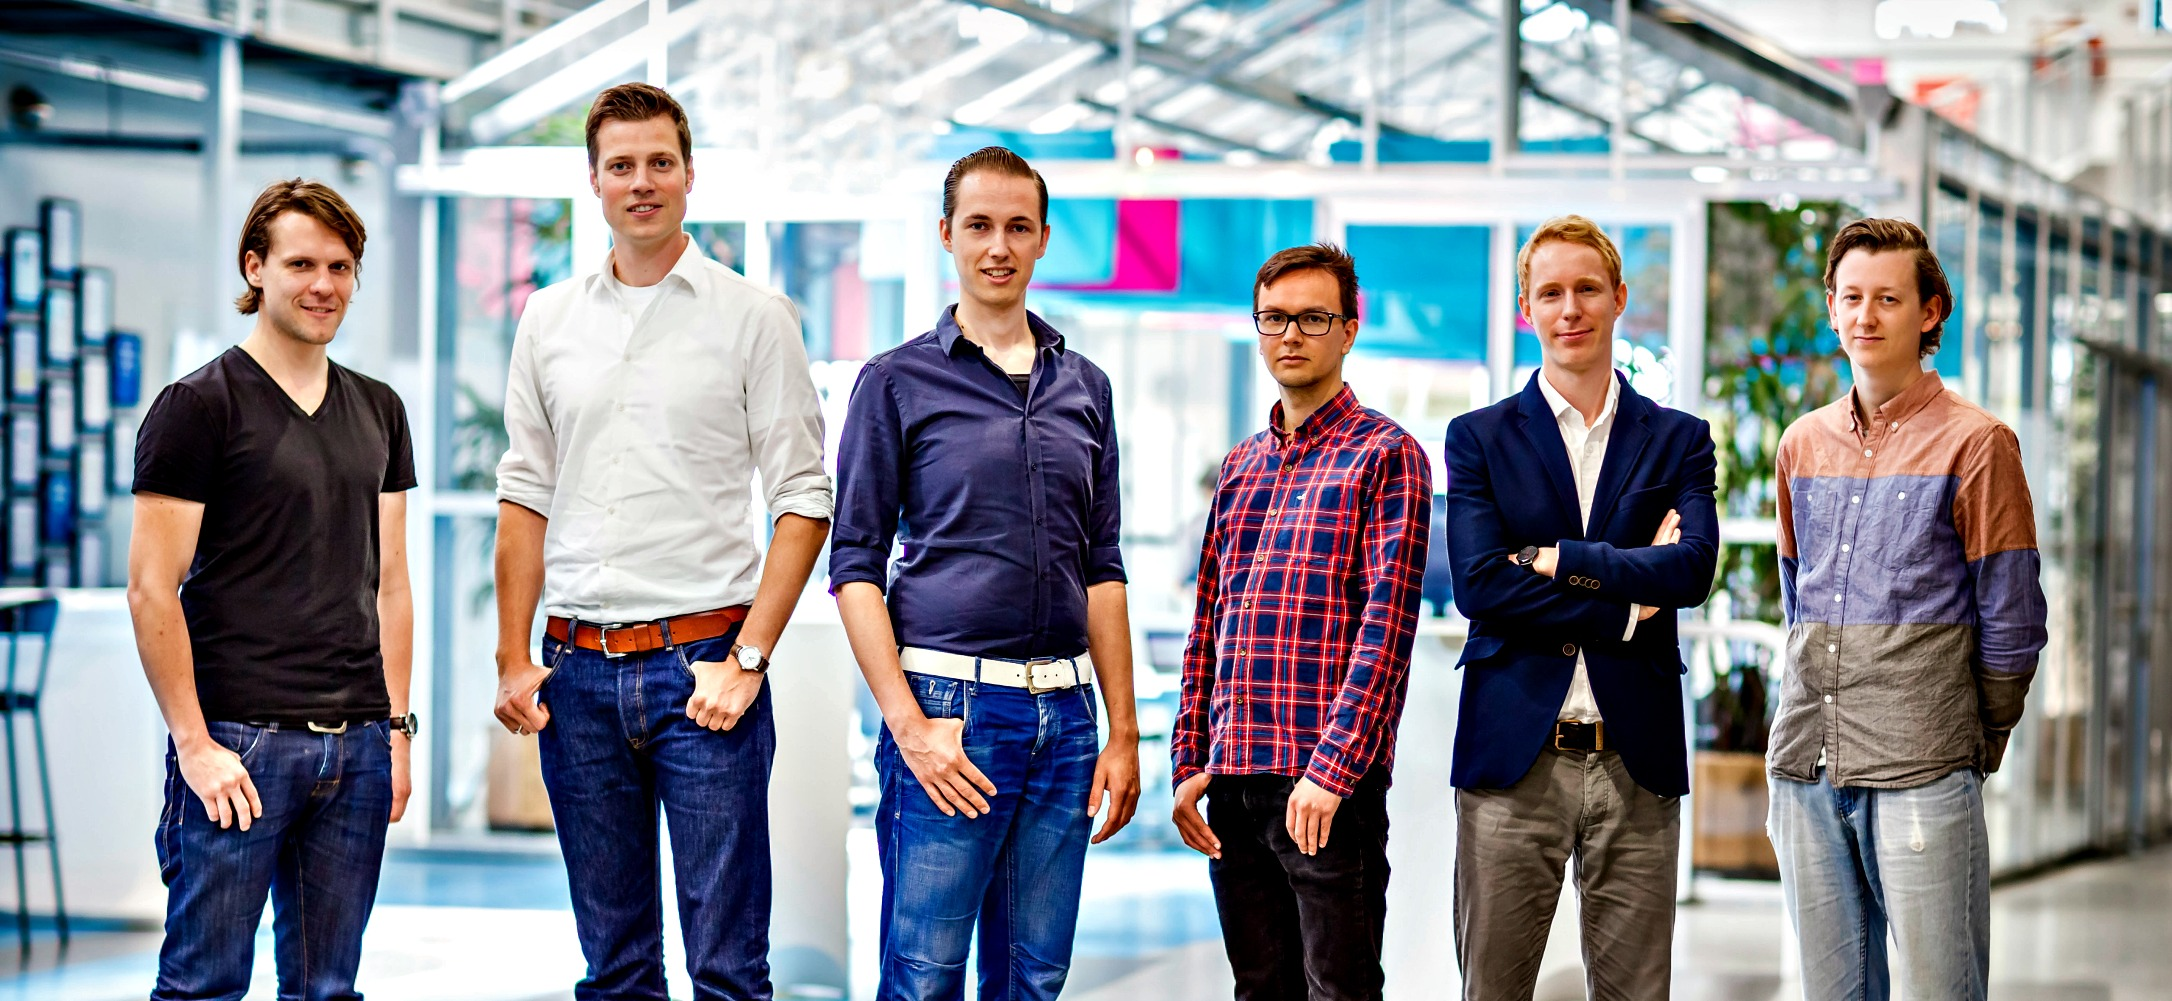 Have a look at 5 new startups in YES!Delft's new incubation programme